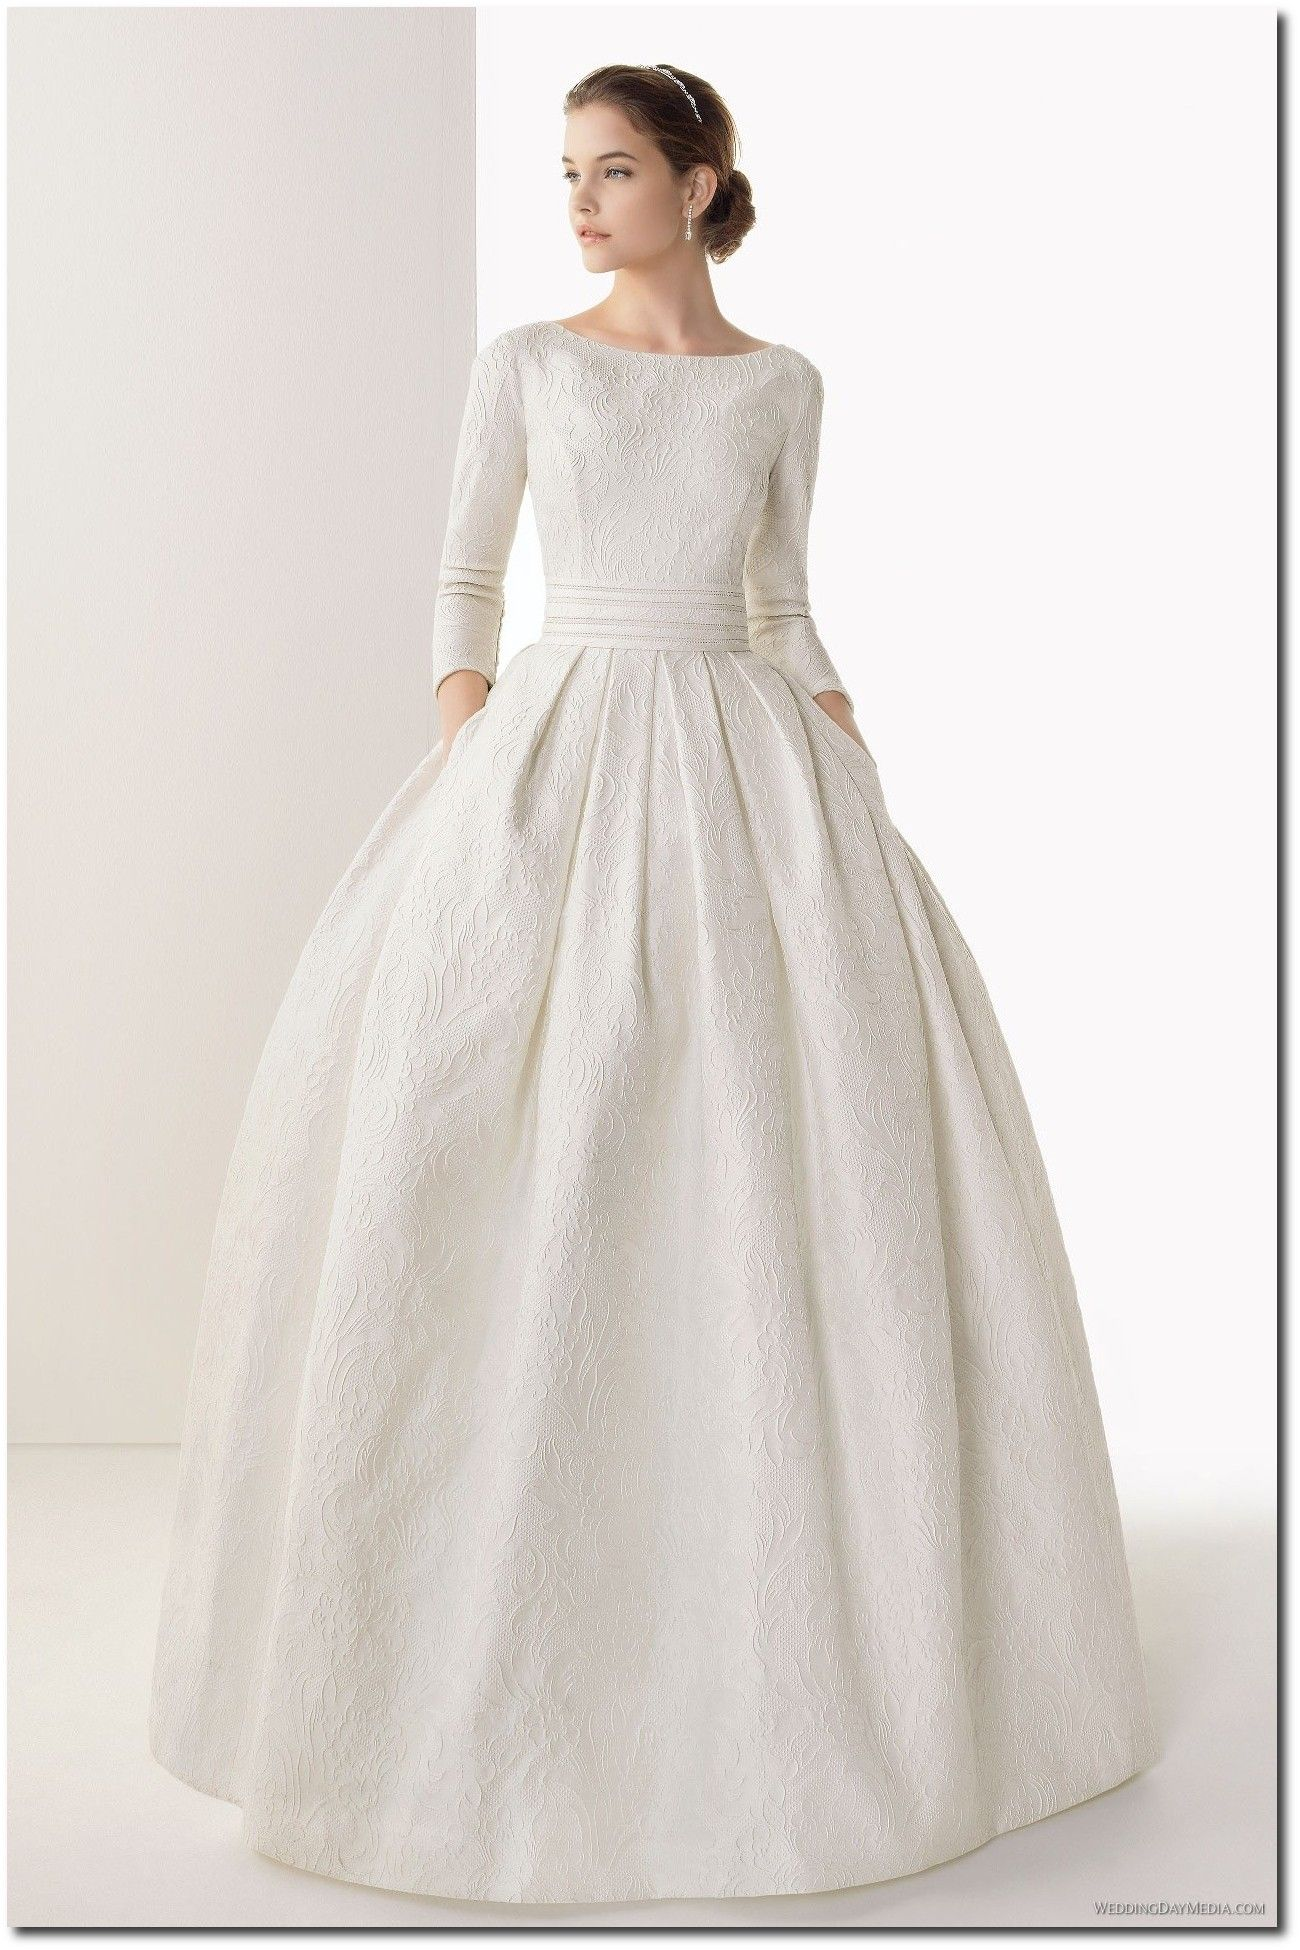 Raw silk dress google search white dress pinterest silk modern classy and conservative white quarter sleeved wedding dress ombrellifo Images